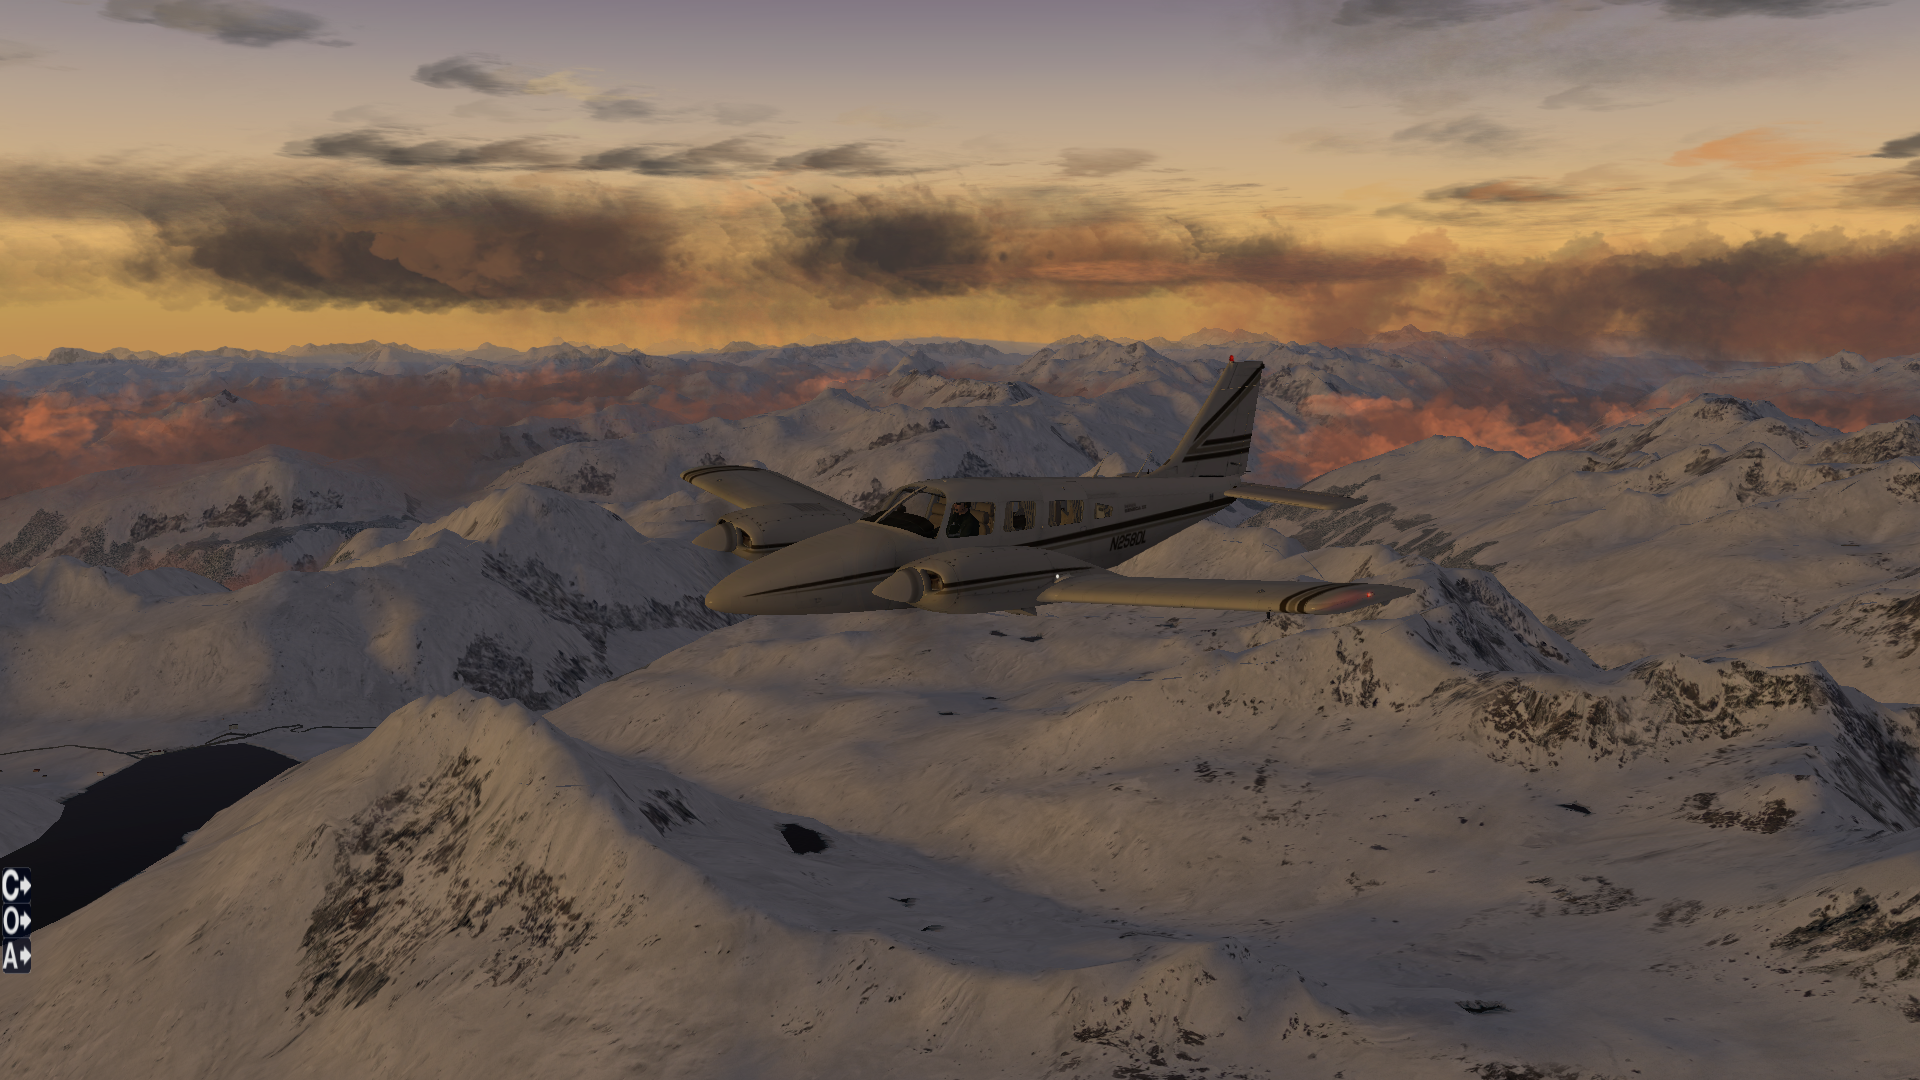 Carenado PA-34 Seneca über den Alpen im Winter